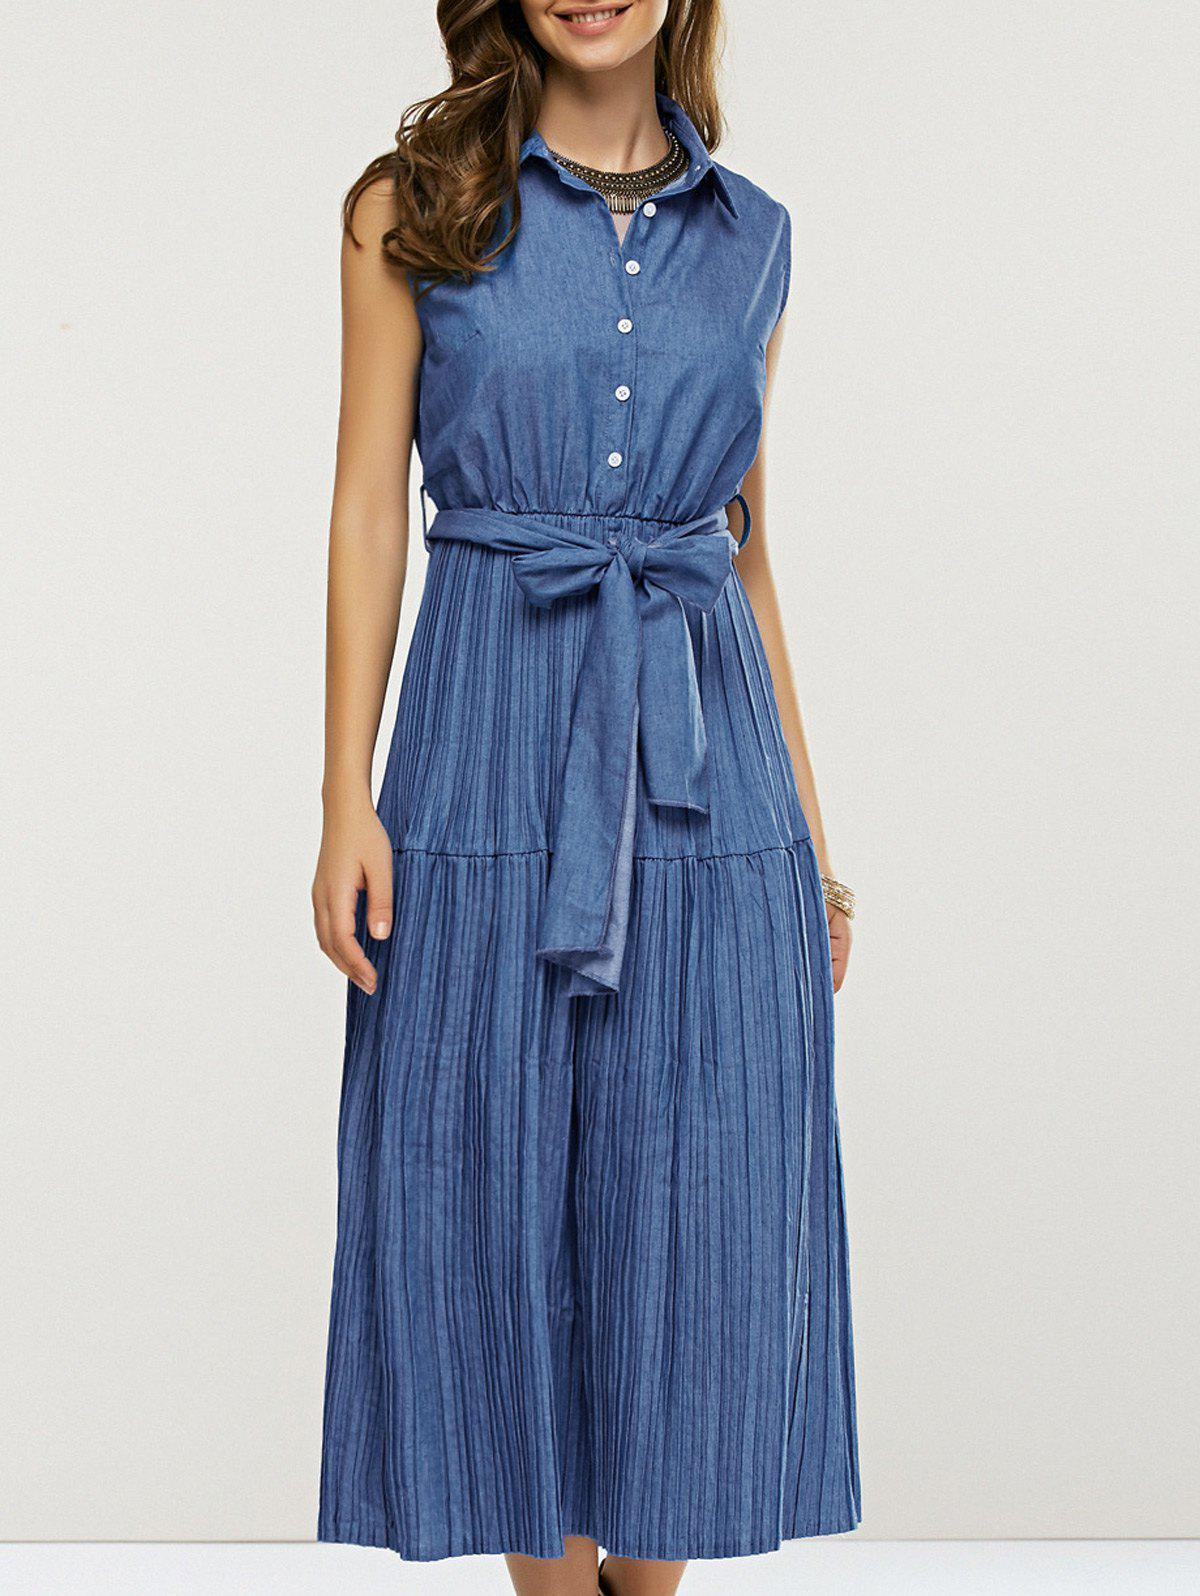 Pleated High Waist Sleeveless Midi Dress - DENIM BLUE L